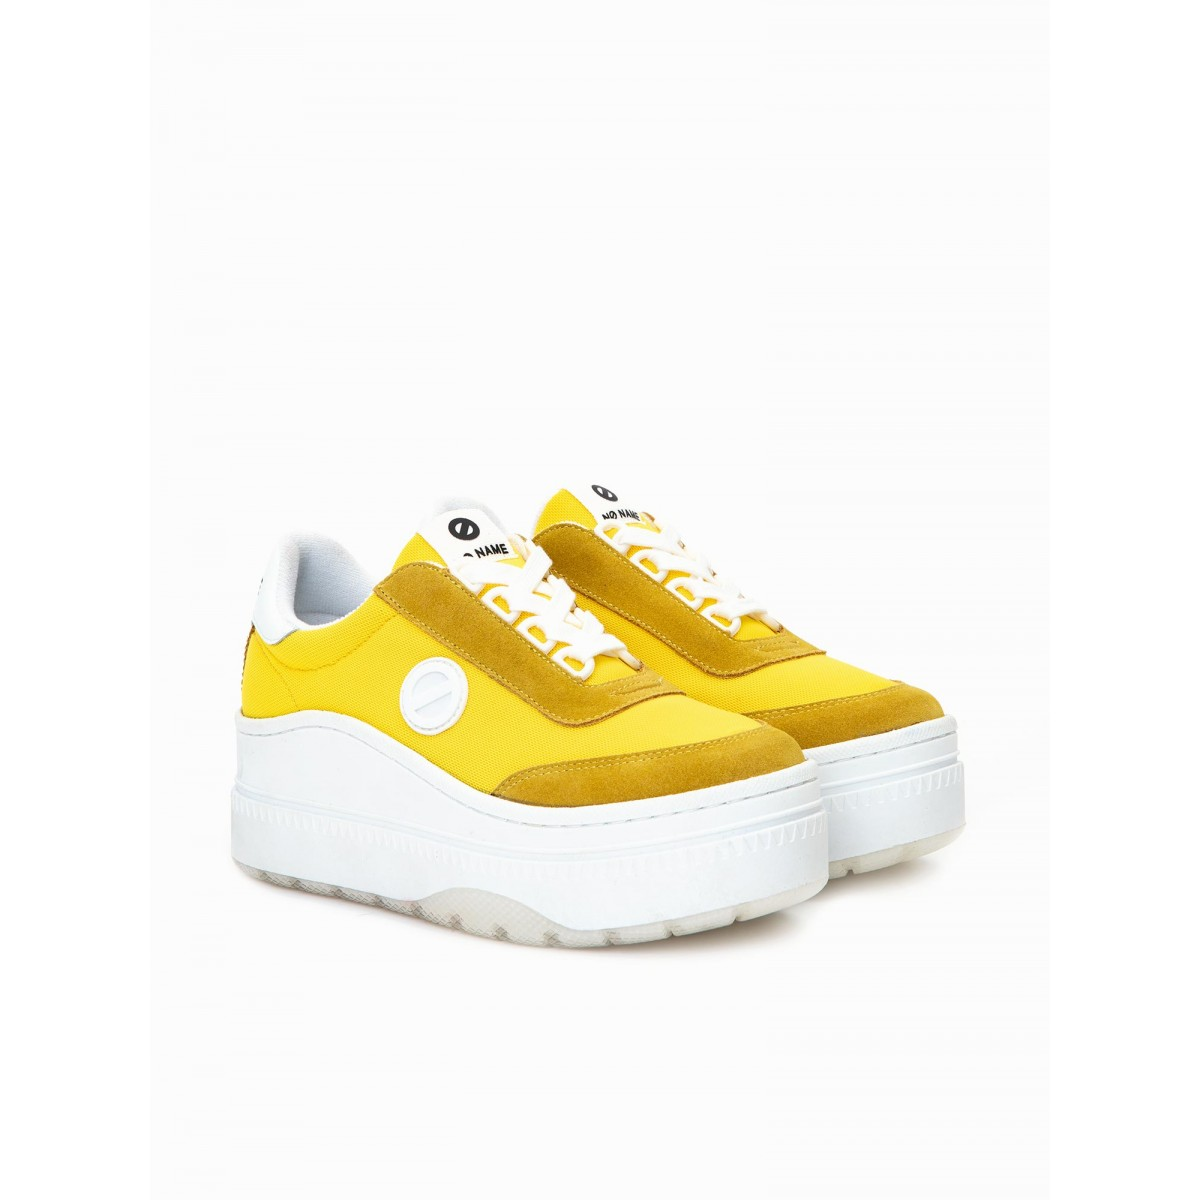 No Name JUMP TENNIS - MESH/SUEDE - YELLOW/YELLOW